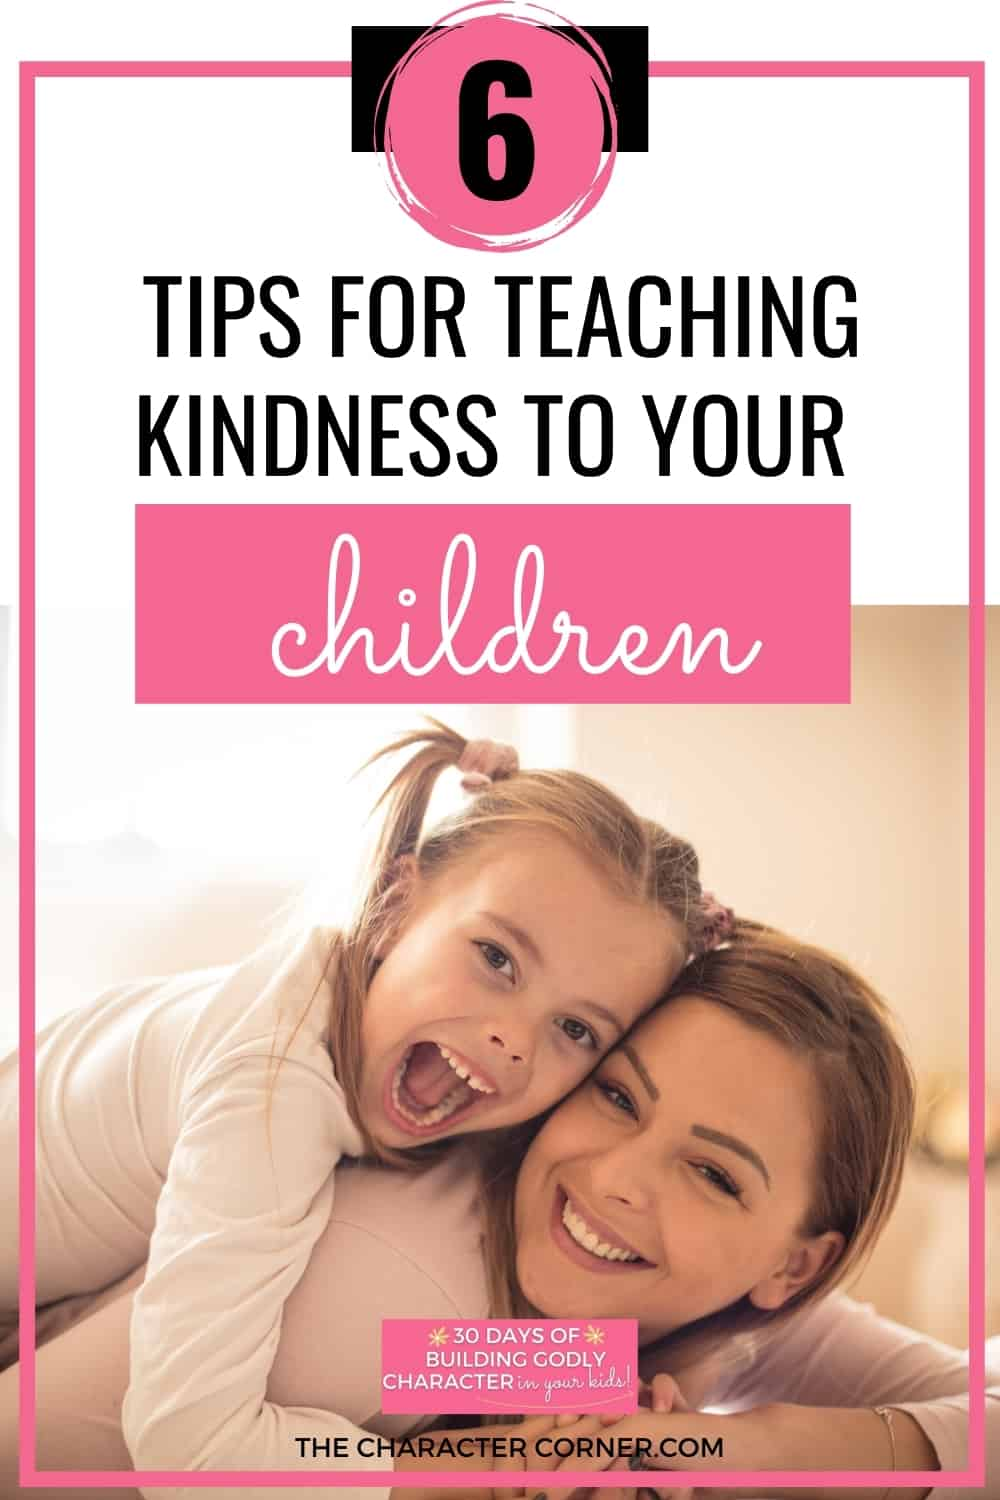 Mom snuggling with daughter and showing how to teach kindness and empathy text on image reads six tips for teaching kindness to your children